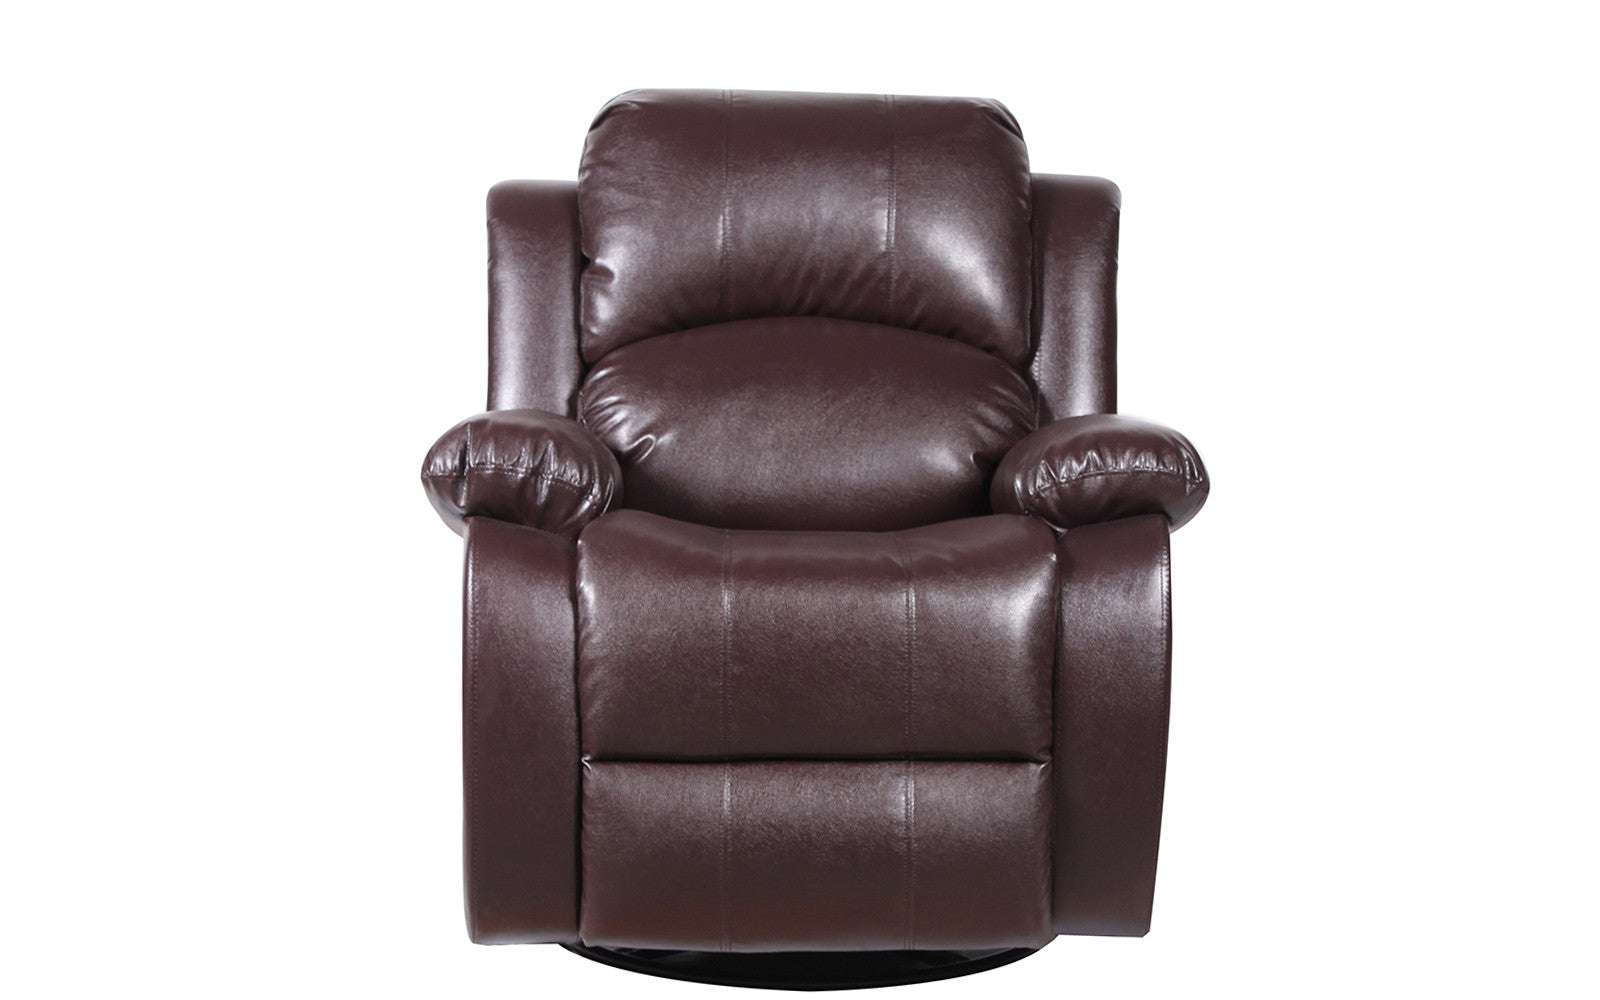 John Bonded Leather Recliner Rocker Swivel Chair In Brown ...  sc 1 st  Sofamania & Leather Recliner | Vic Classic Bonded Leather Recliner | Sofamania.com islam-shia.org